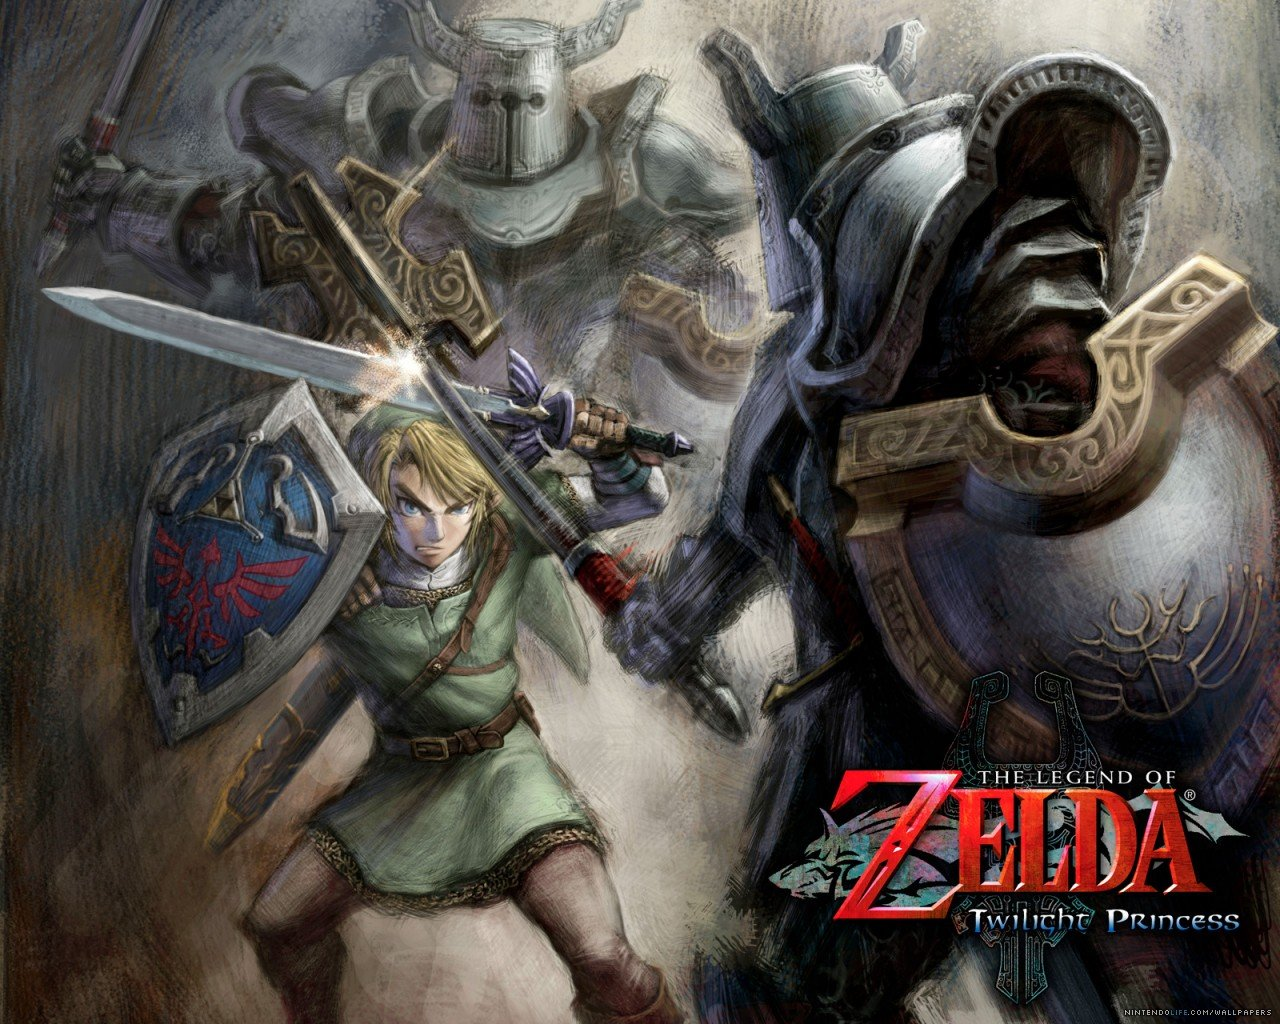 Twilight Princess Wallpapers   The Legend of Zelda Twilight Princess 1280x1024